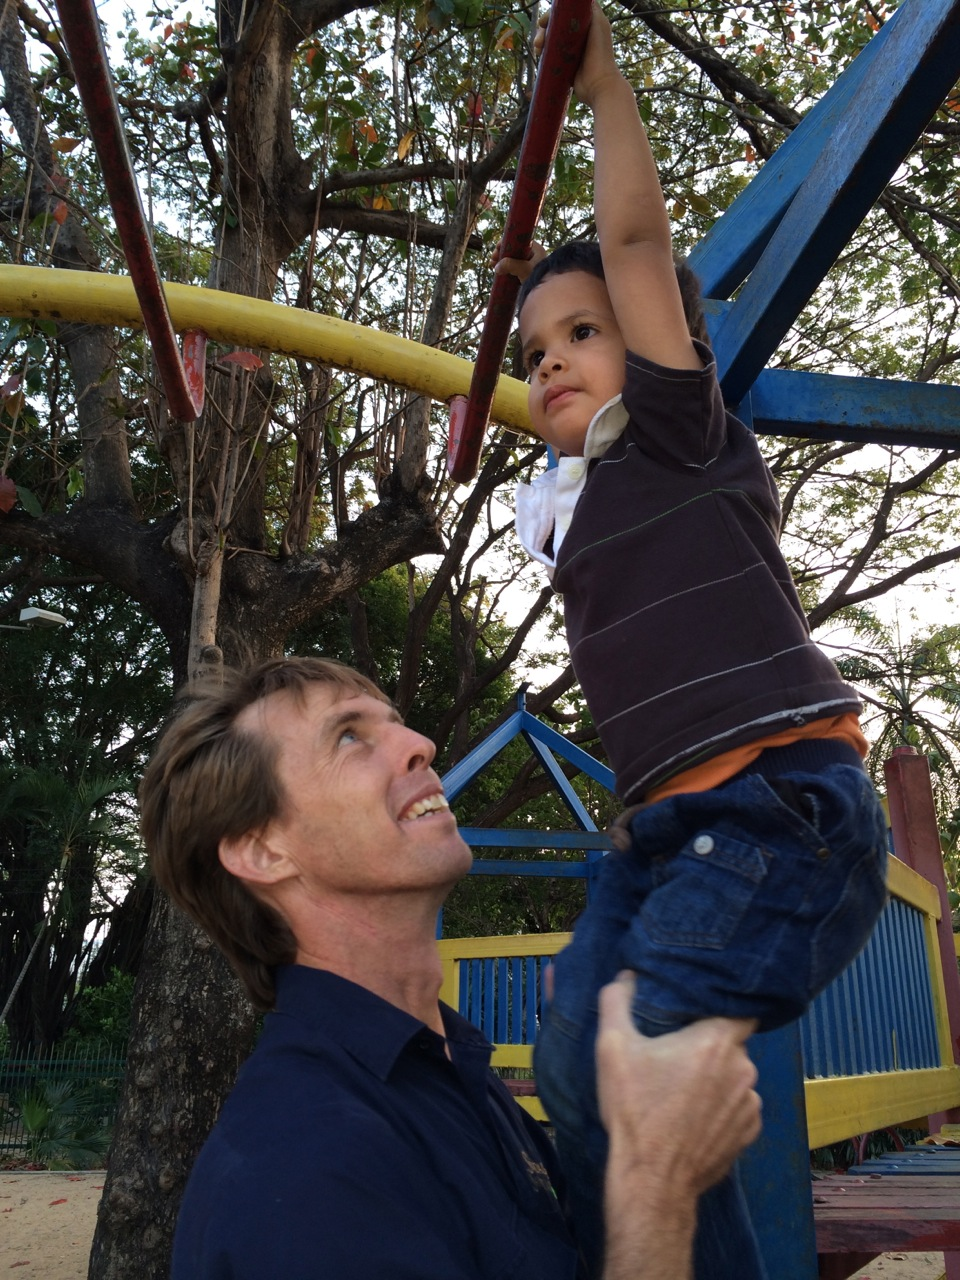 Jacob hanging around with his Uncle Paul.